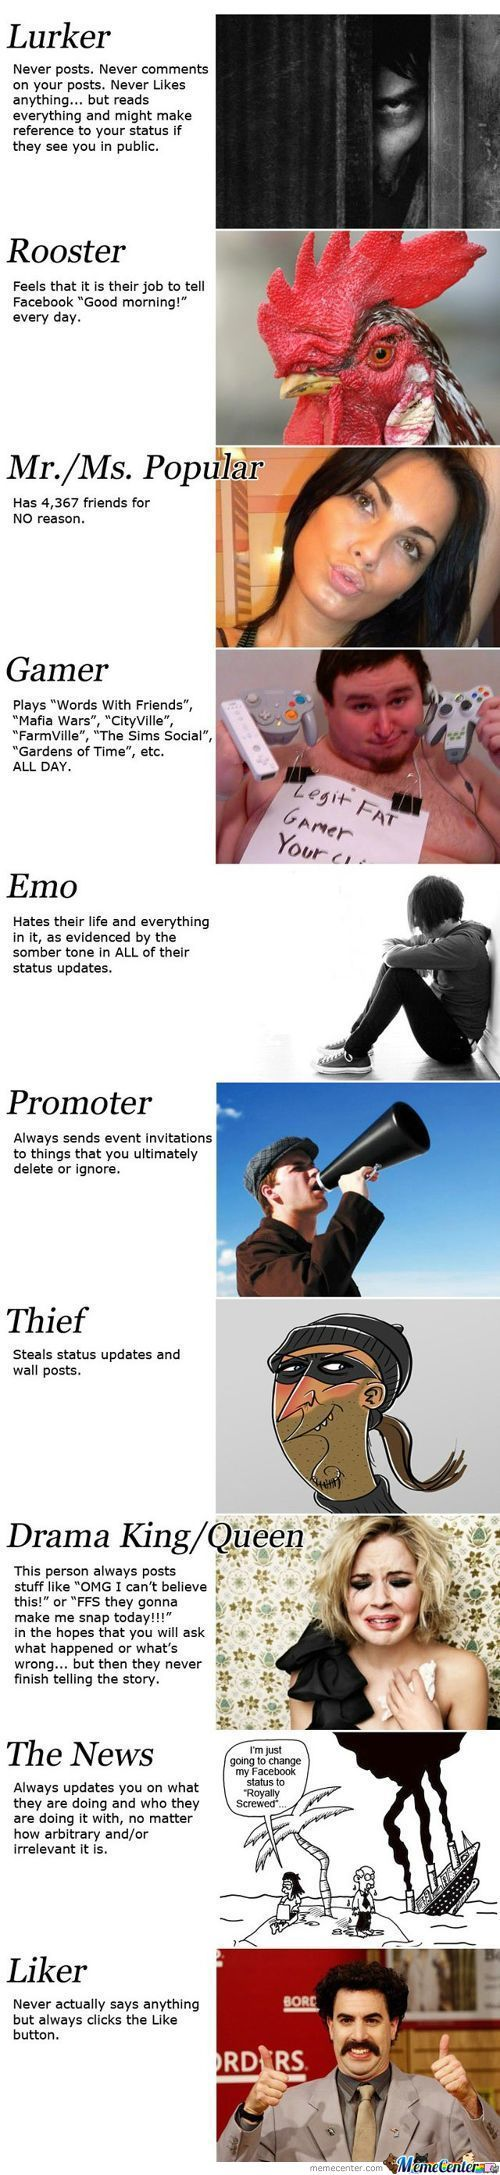 11 Types Of Wil Fb Users! (Sorry For Long Post)